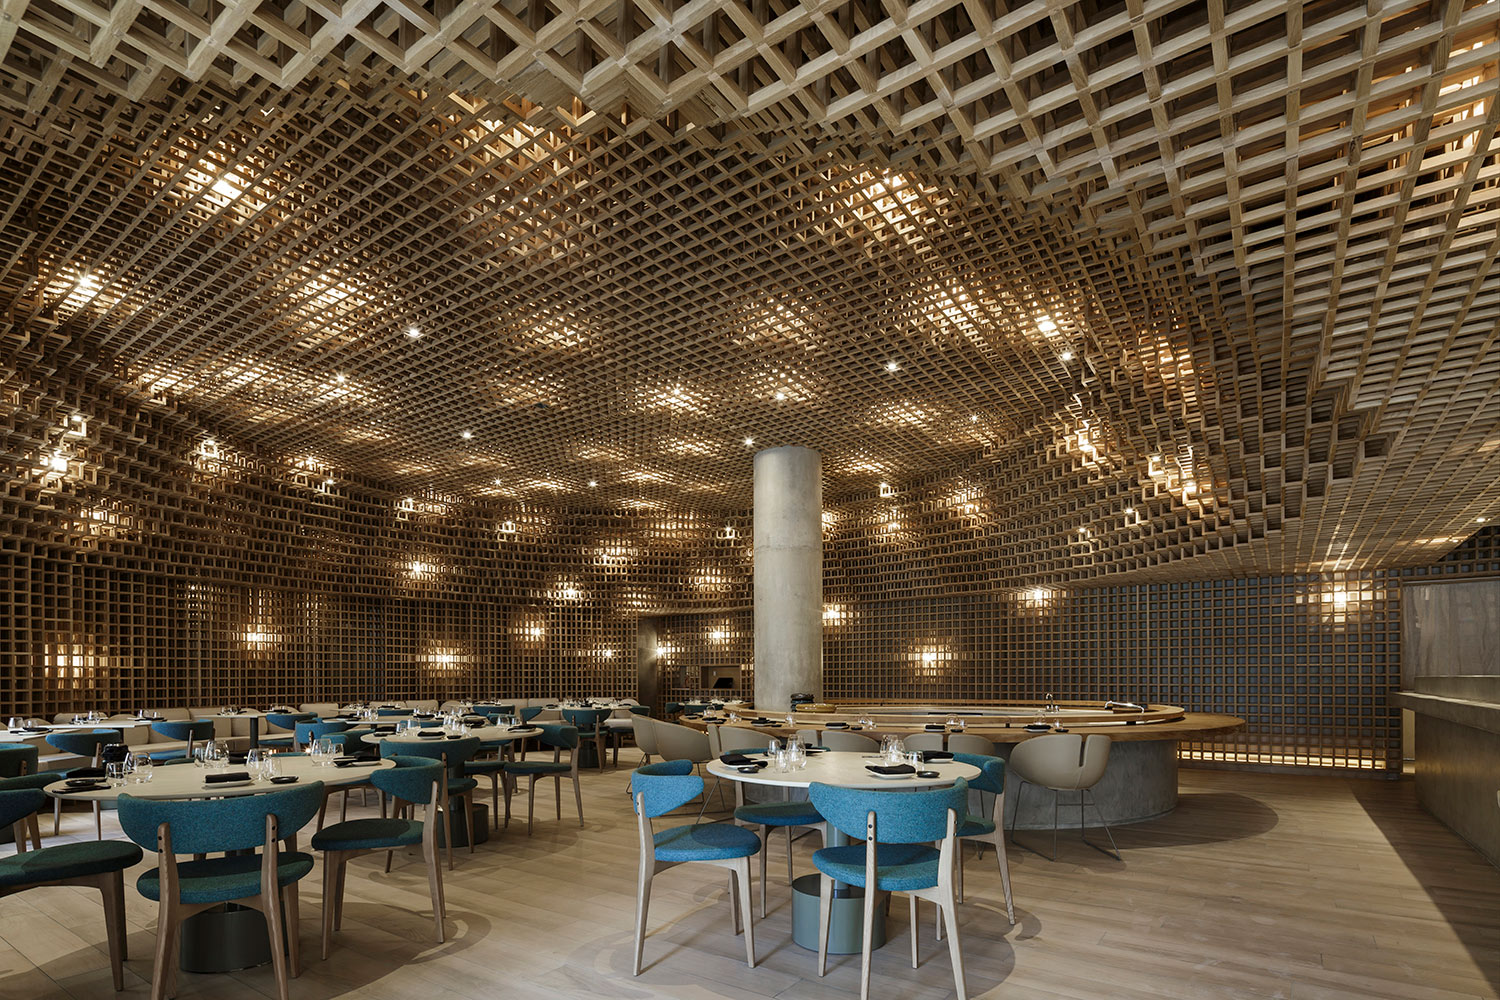 Through the use of materiality, lighting, color, and texture, Kosushi puts the user as the center of experience. Filippo Bamberghi